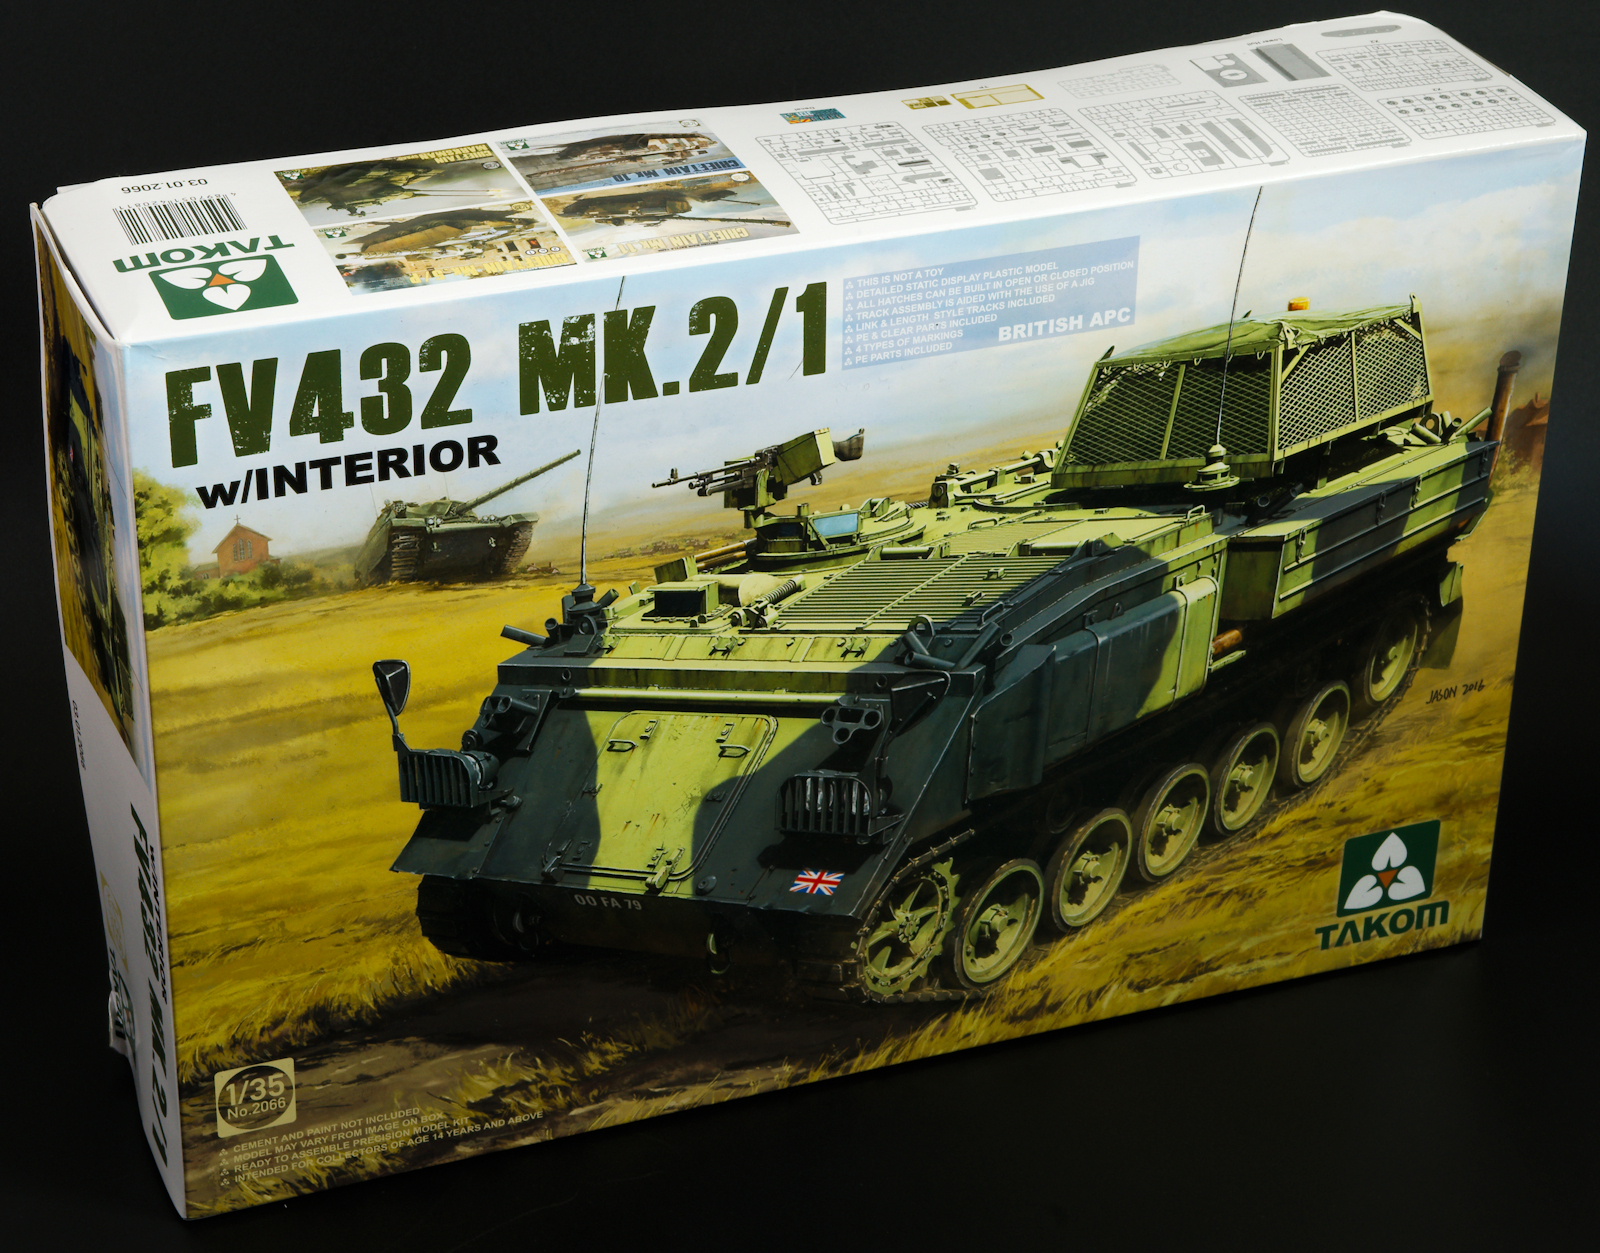 The modelling news claytons build guide of the fv432 mk21 today build guide of the fv432 mk21 british apc takom sciox Choice Image